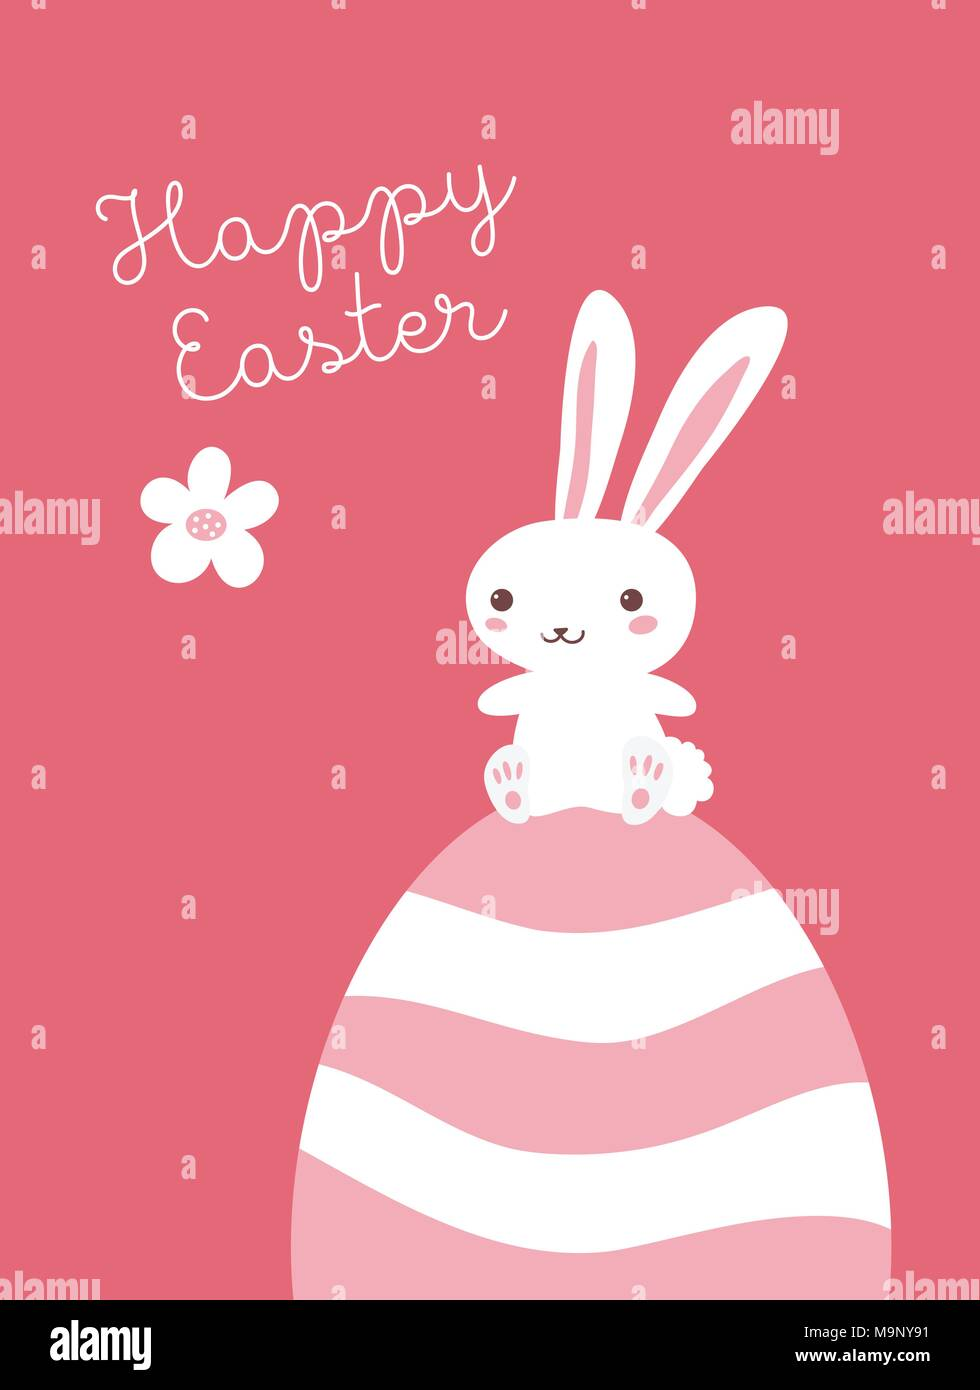 happy easter vector card template with a bunny character stock